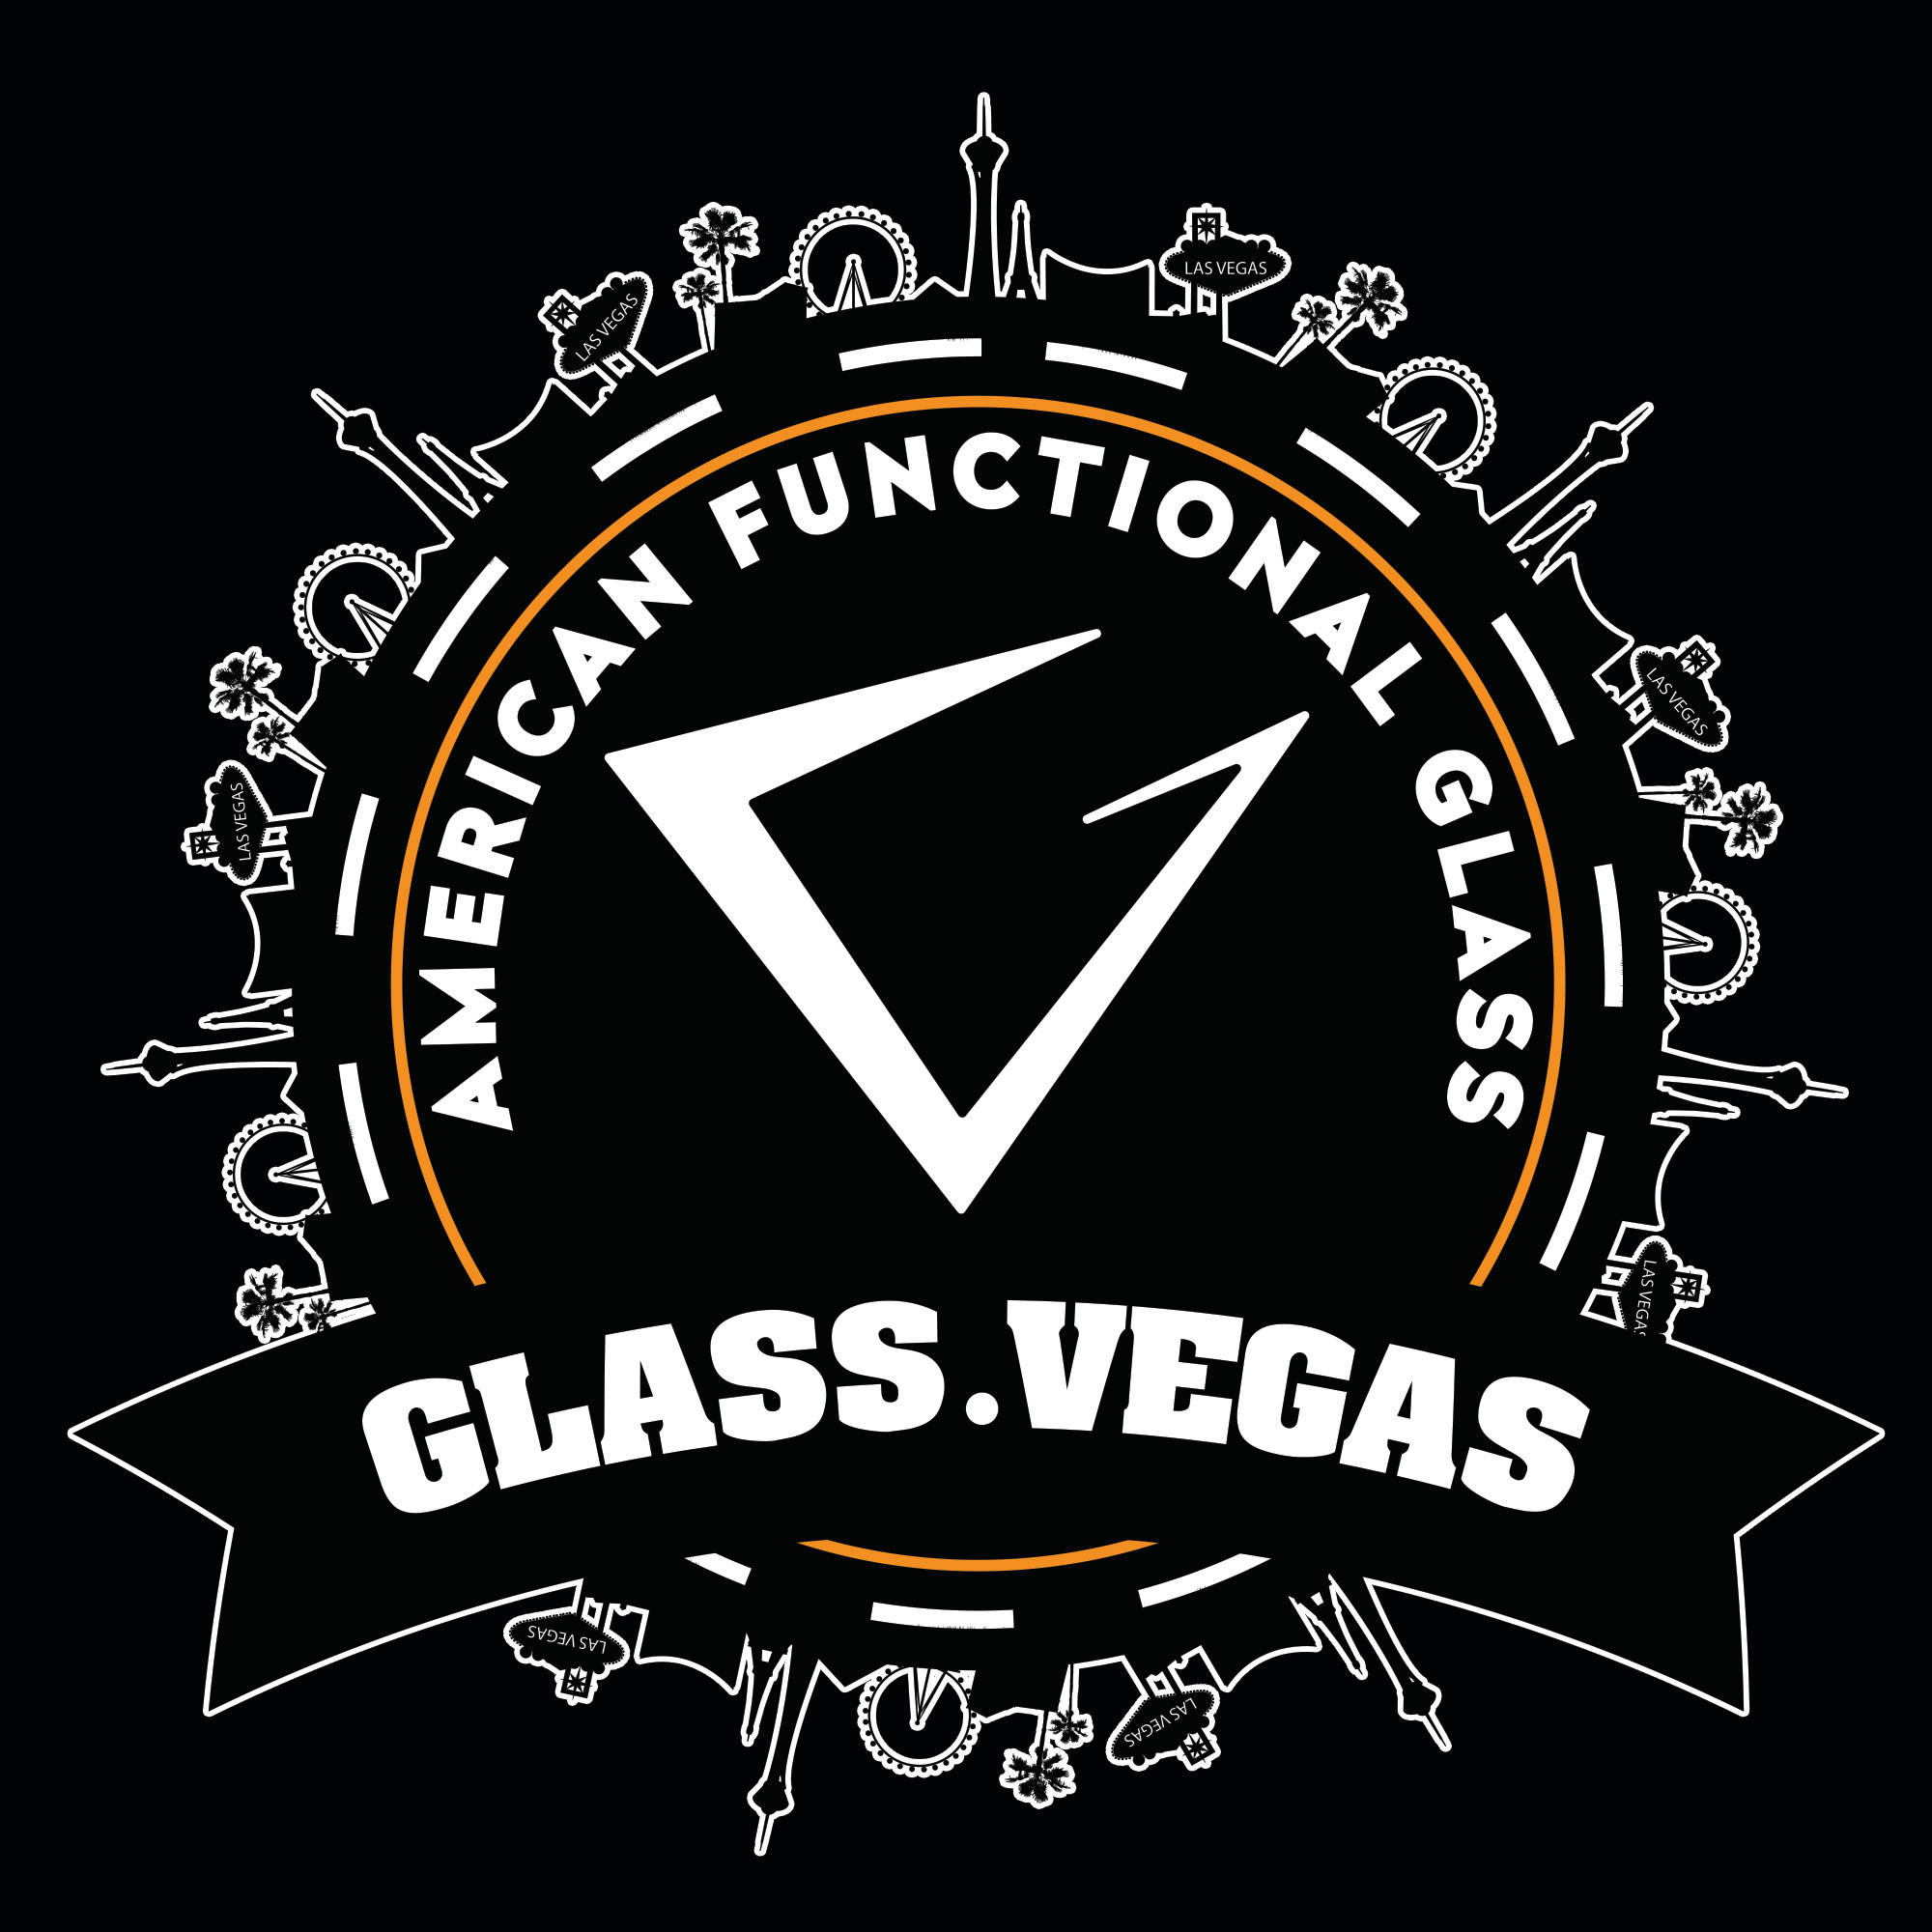 Glass Vegas